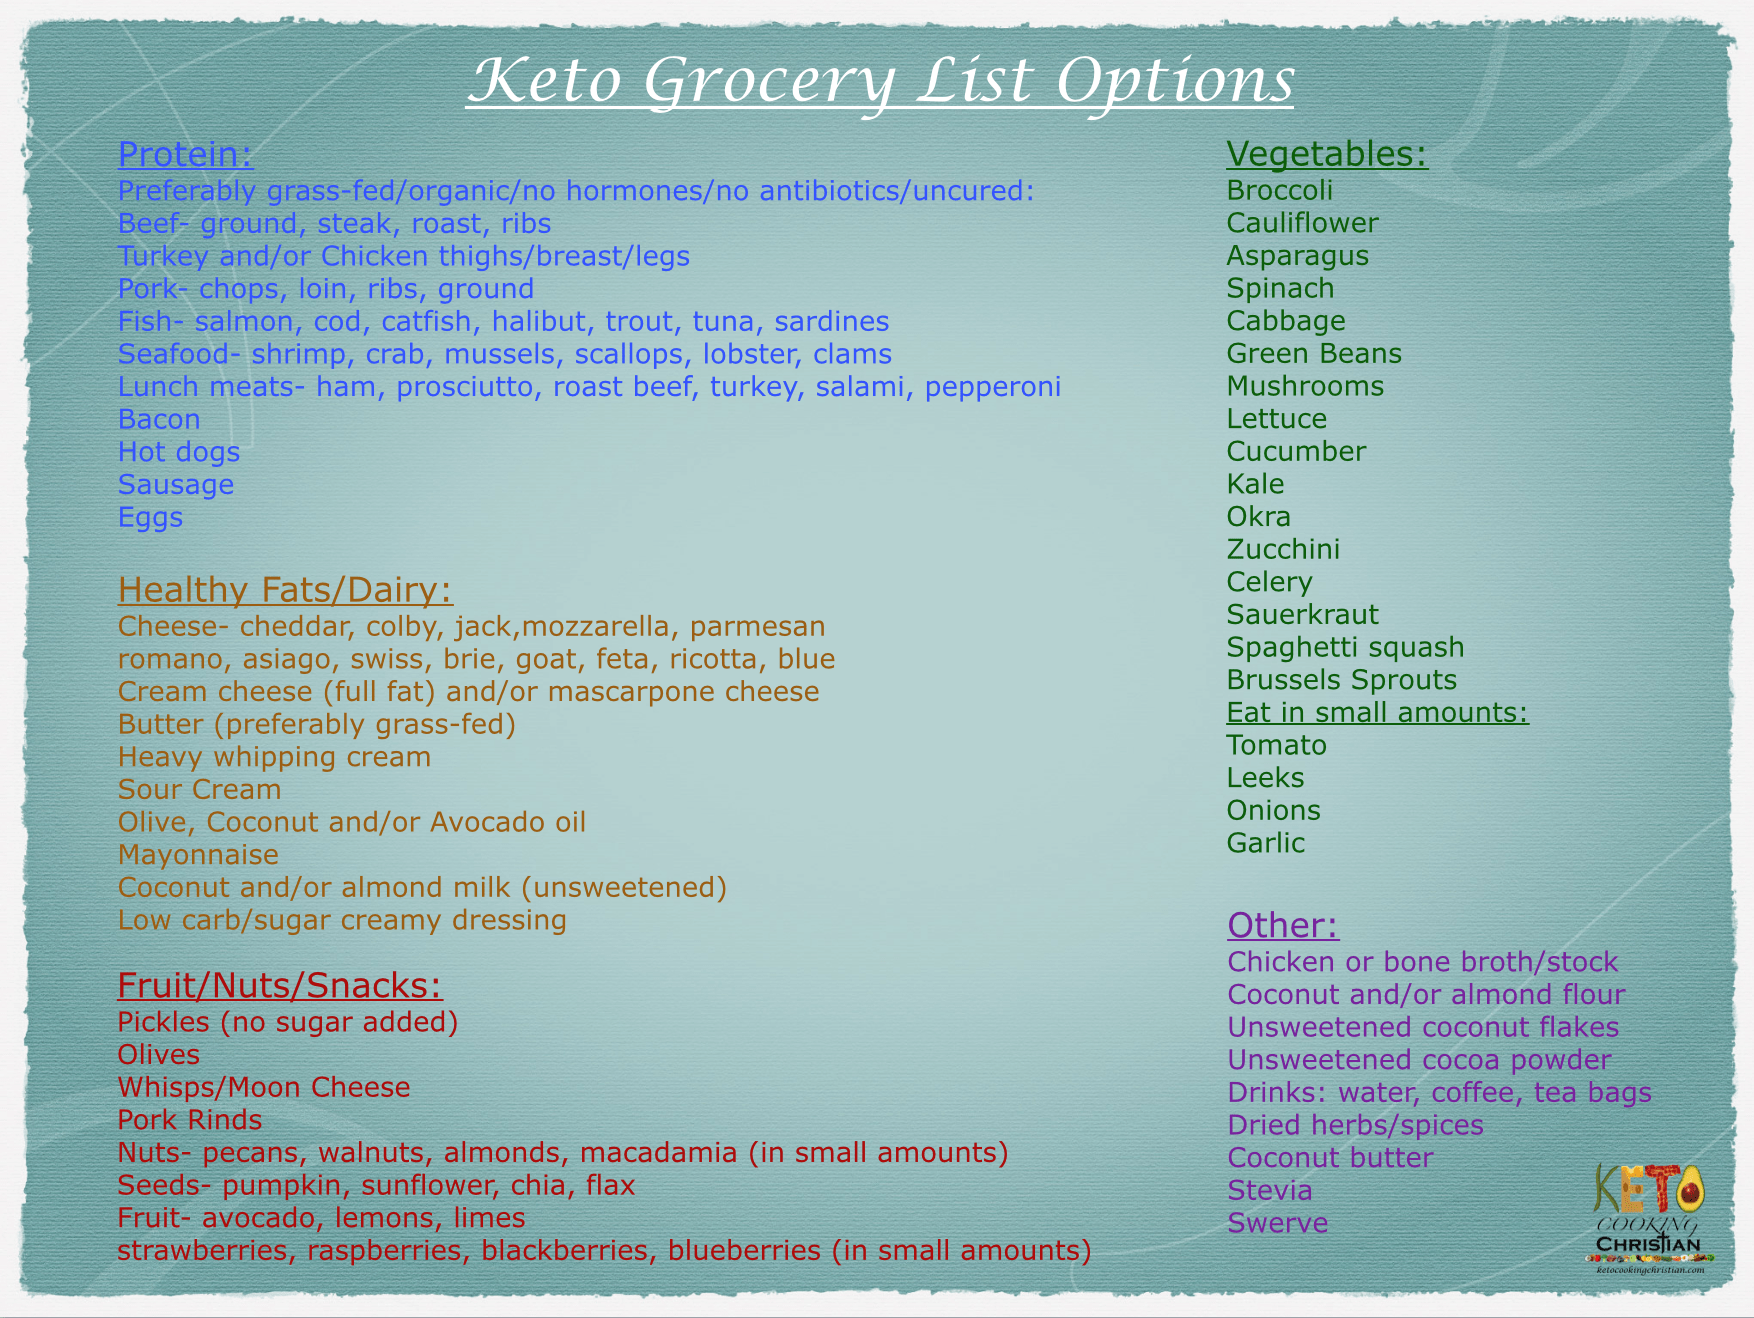 Keto Grocery Shopping List Options